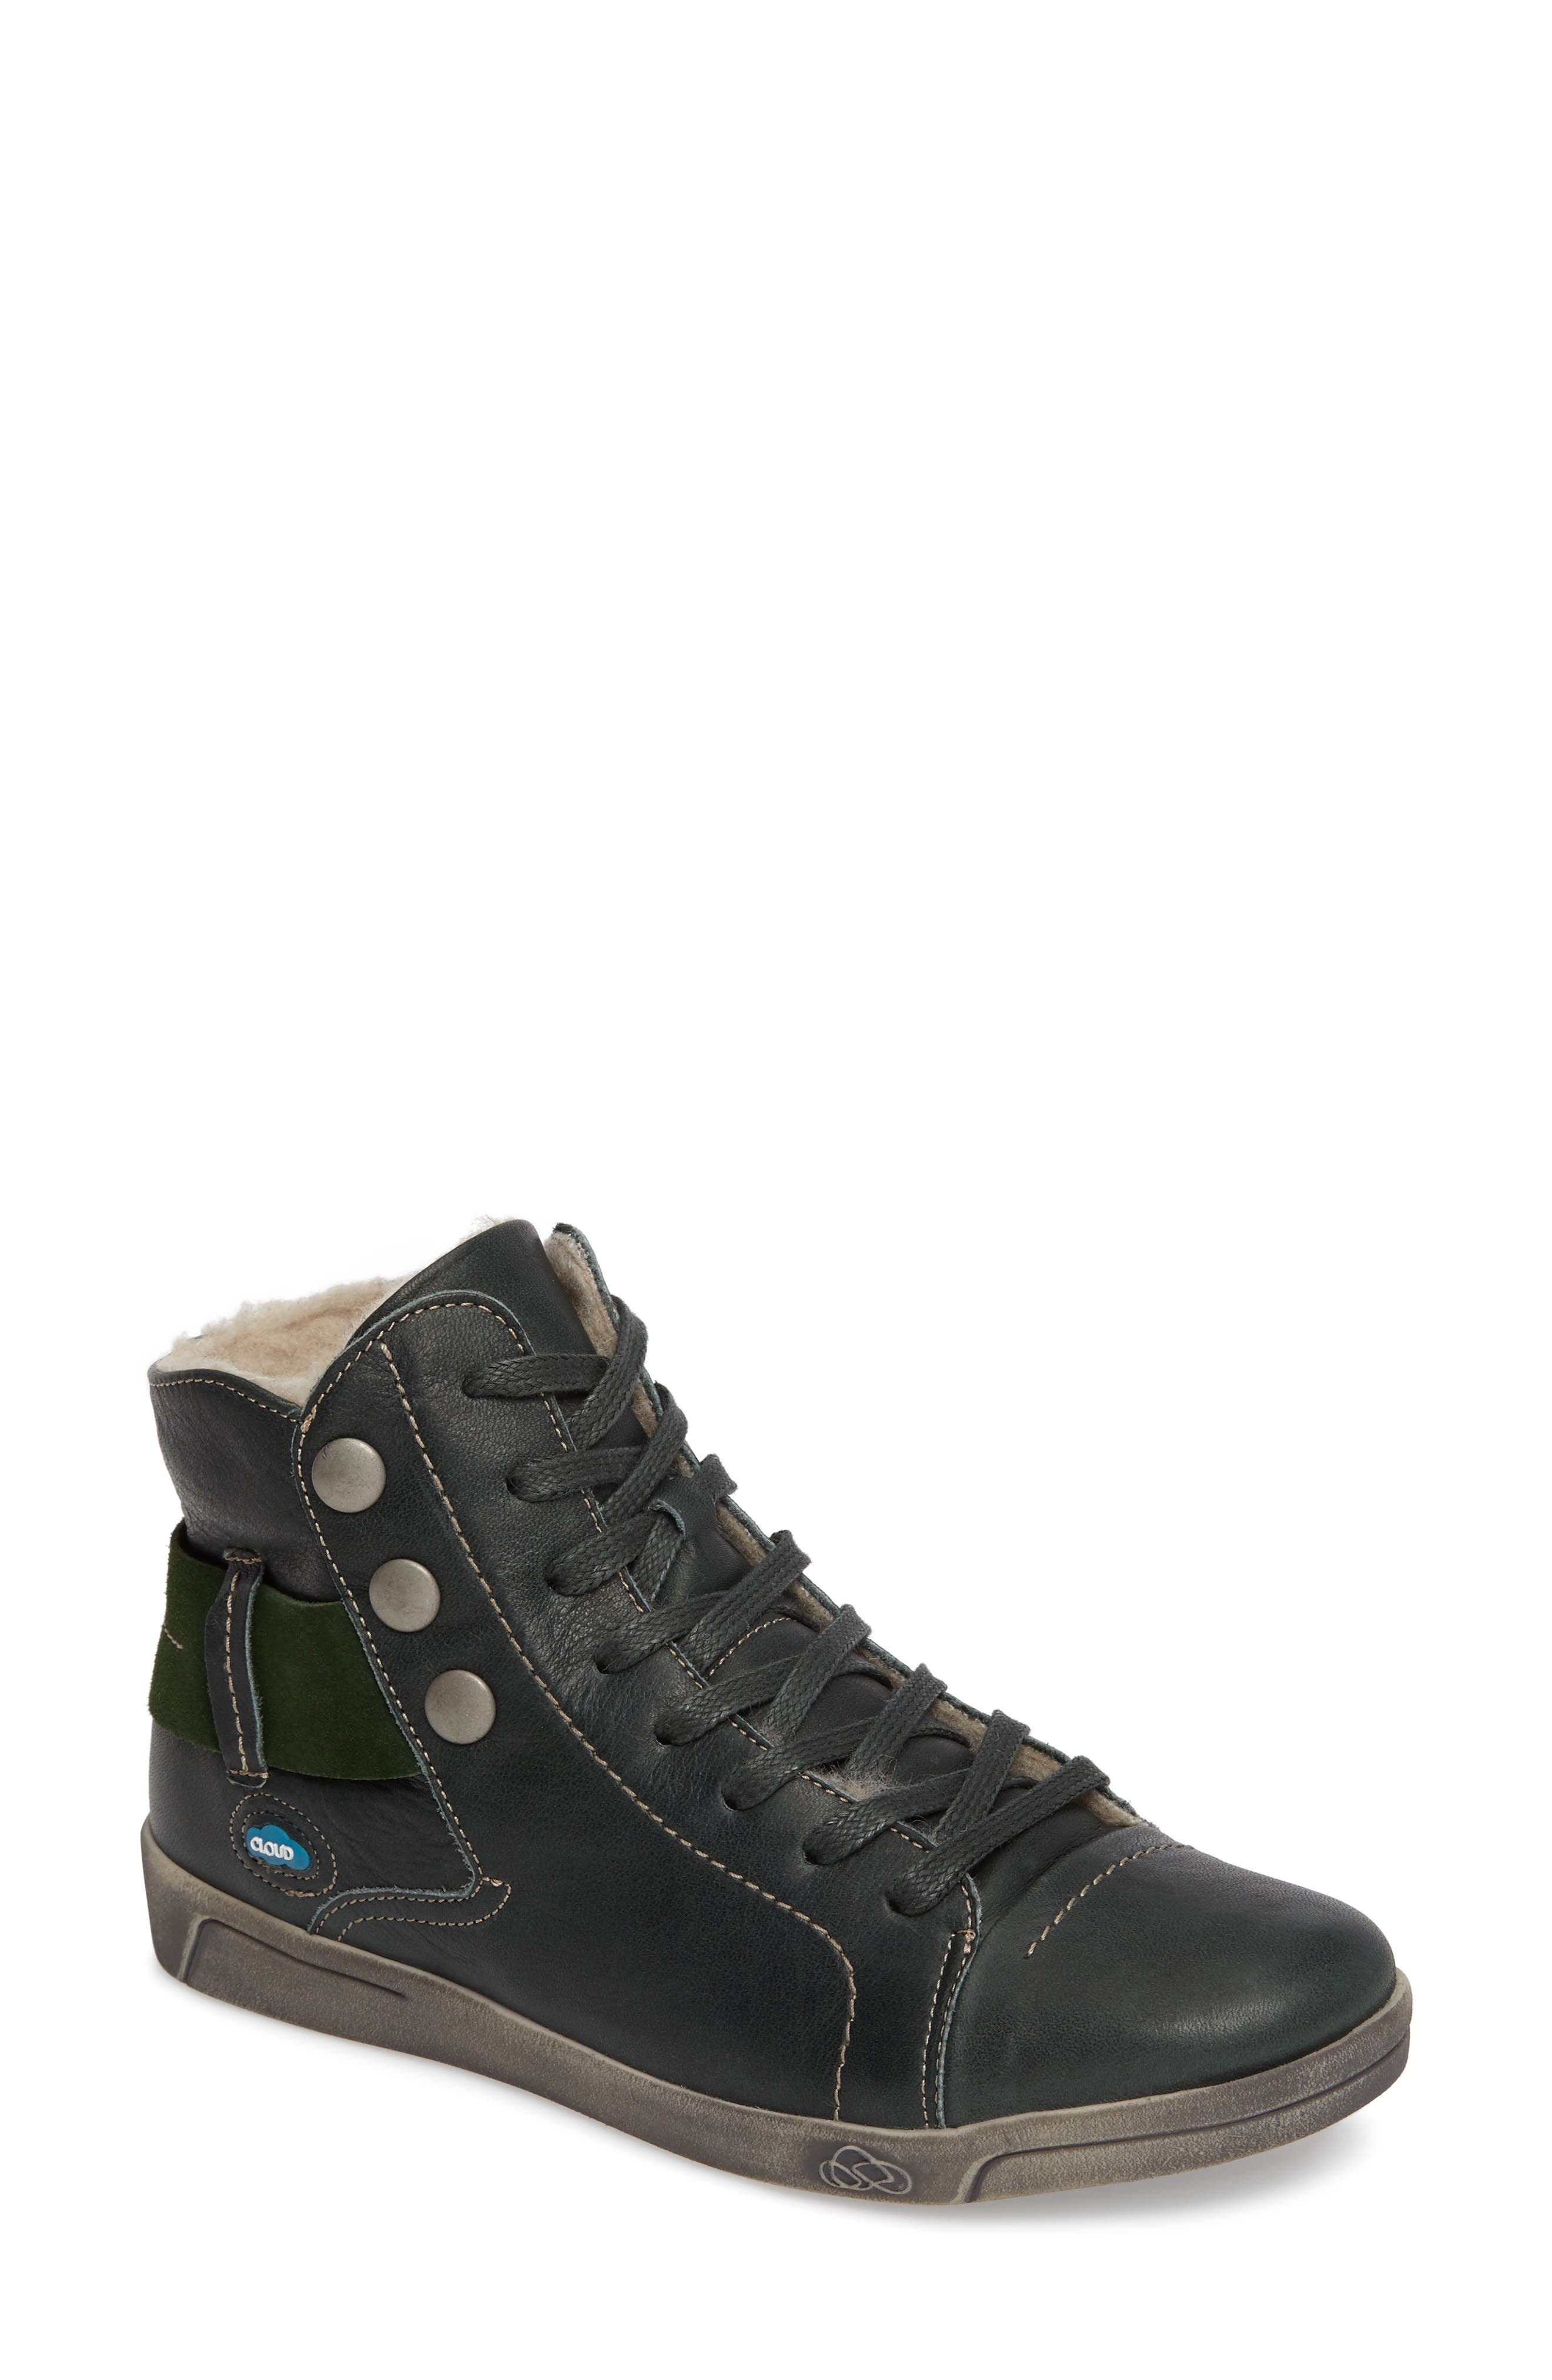 'Aline' Sneaker,                             Main thumbnail 1, color,                             GREEN LEATHER